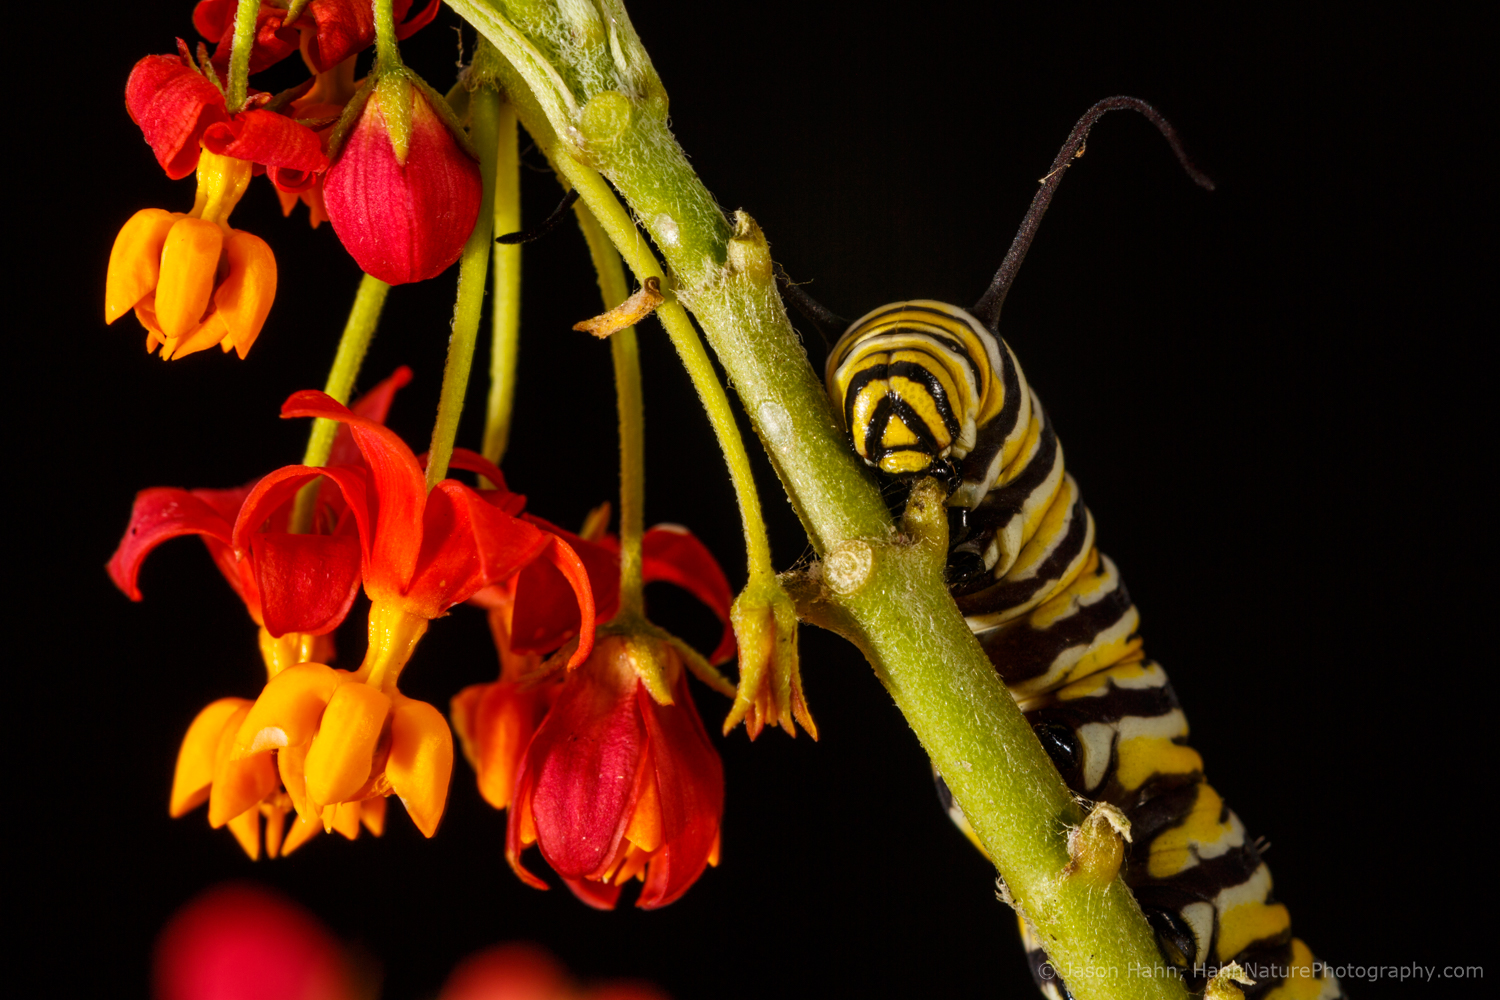 Monarch Caterpillar on Milkweed